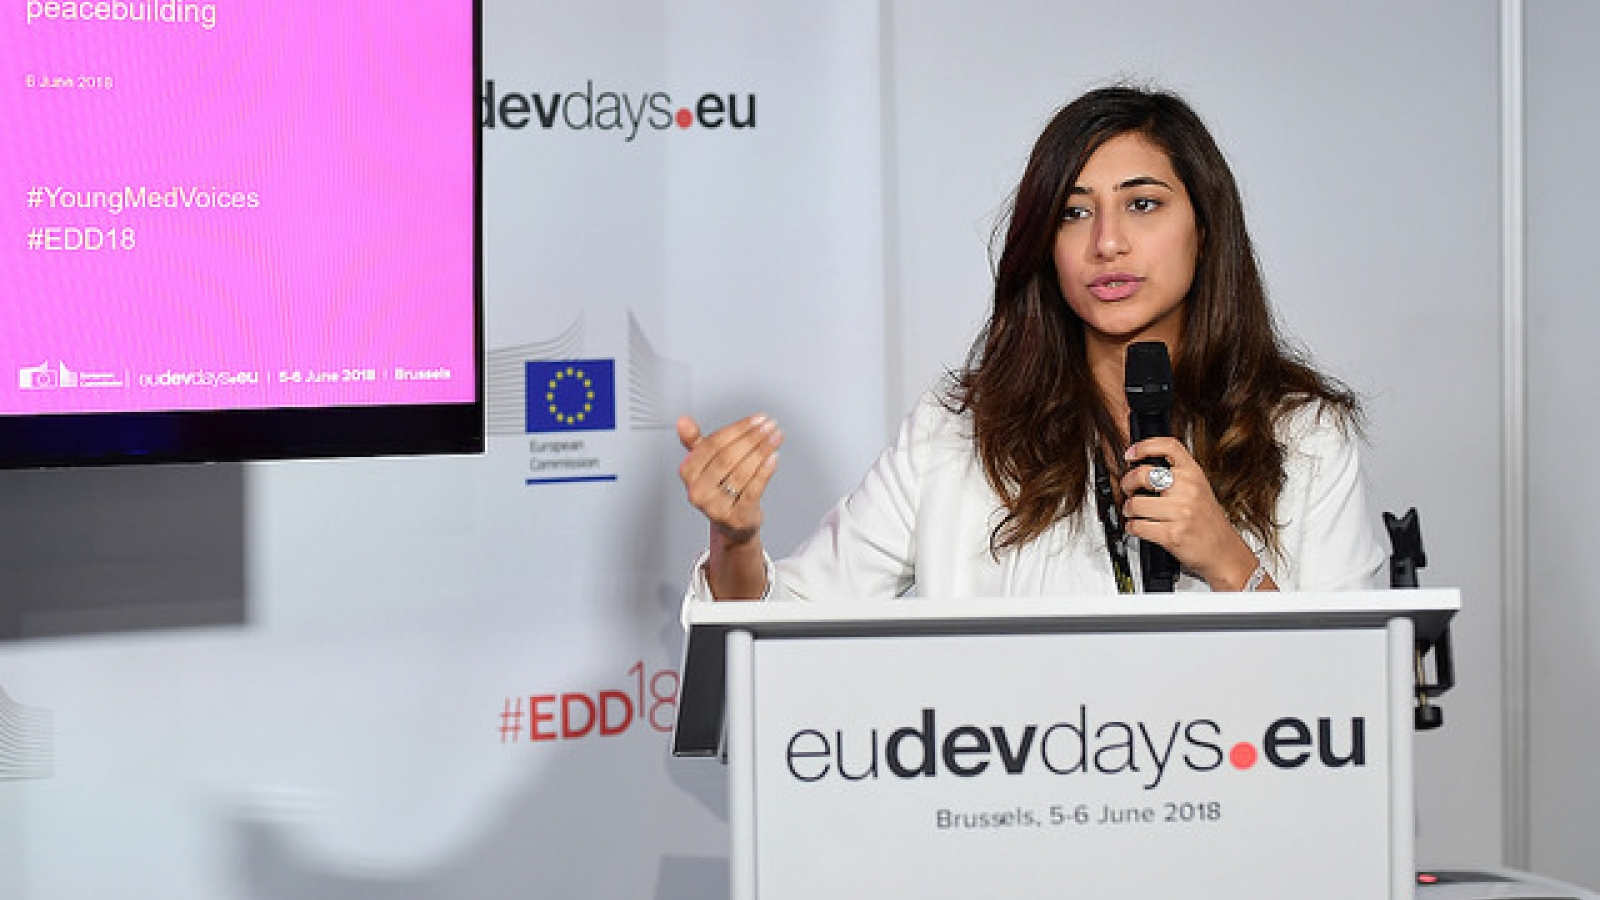 Young Med Voices leads debate on digitally-enabled peacebuilding at European Development Days 2018